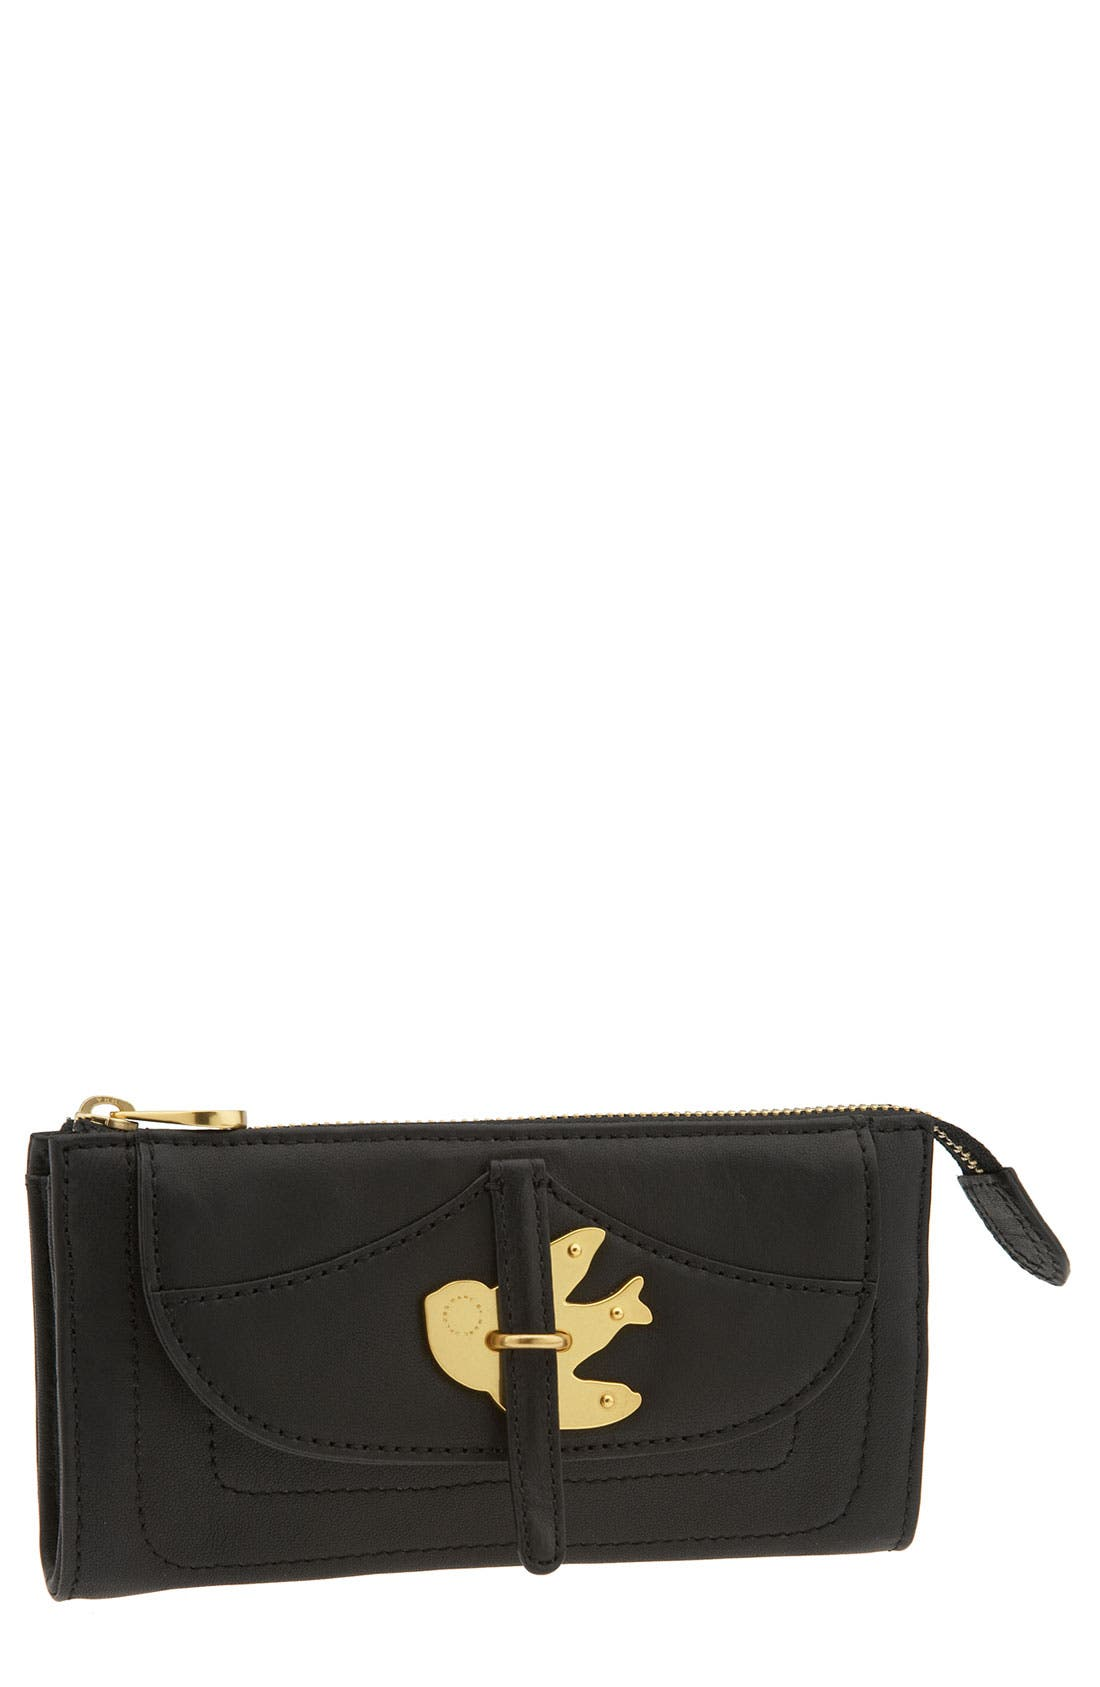 MARC BY MARC JACOBS 'Petal to the Metal' Zip Clutch Wallet,                         Main,                         color, 001